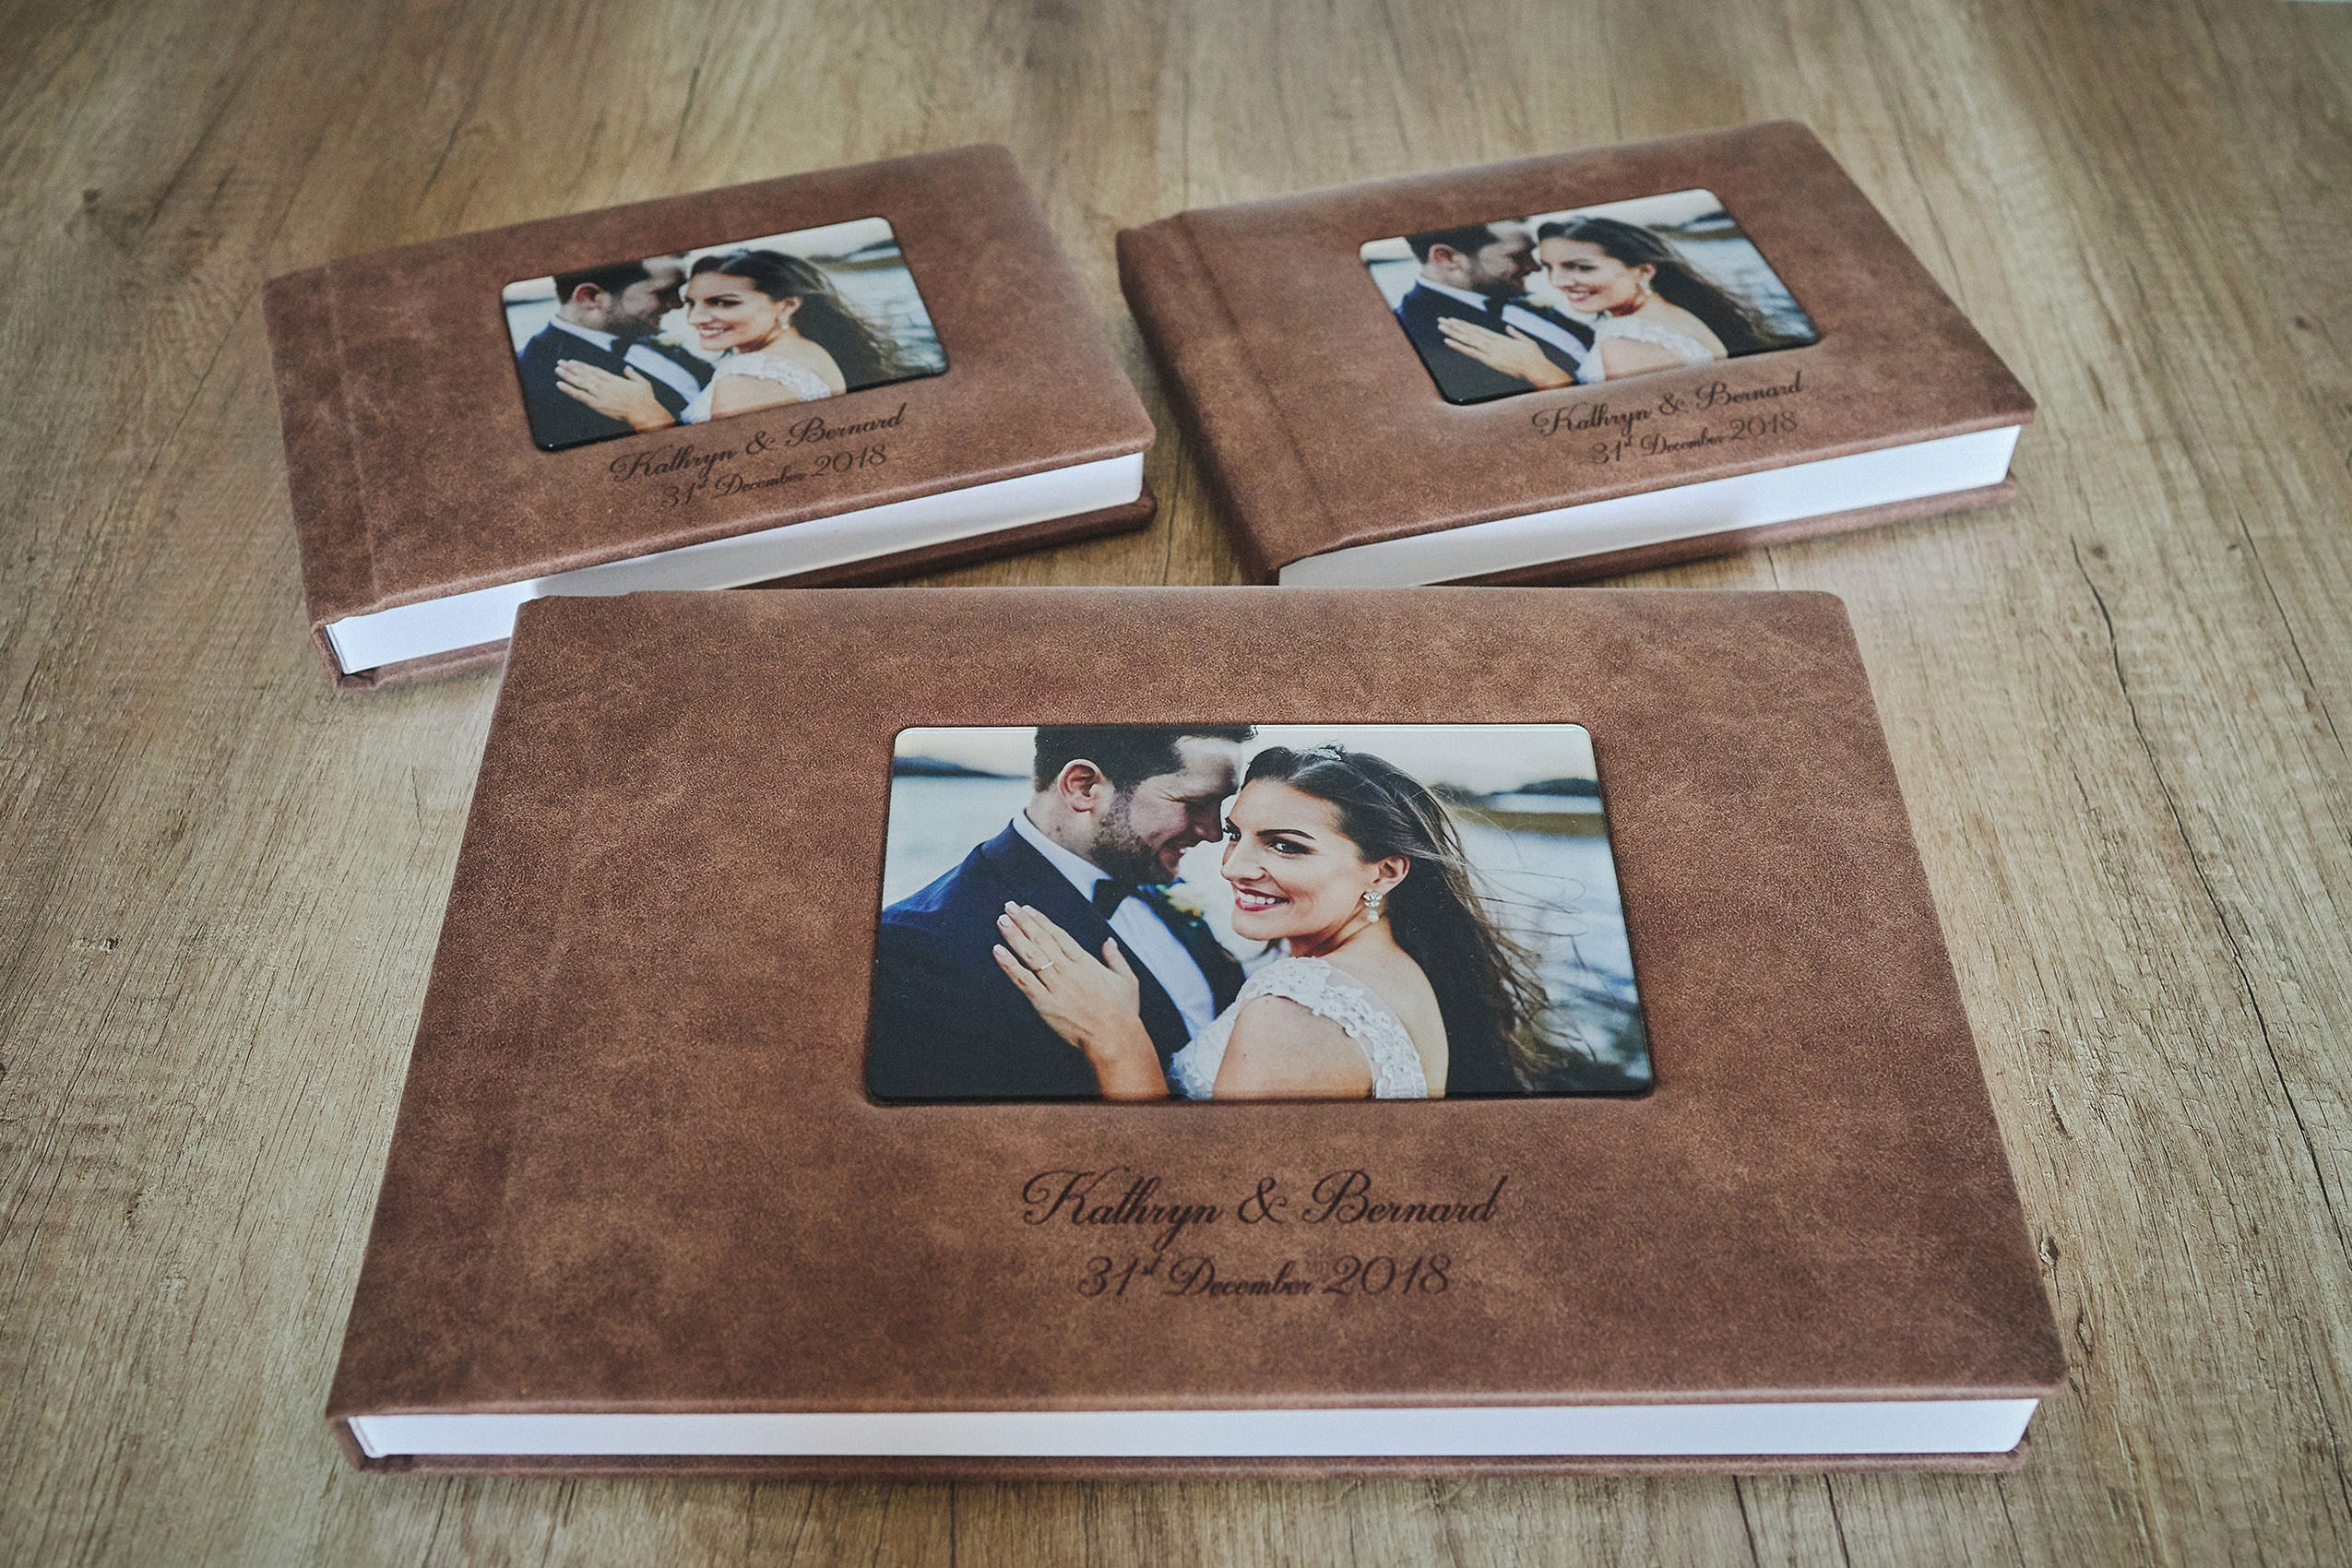 Wedding Albums Payment Plan and prices in Ireland?